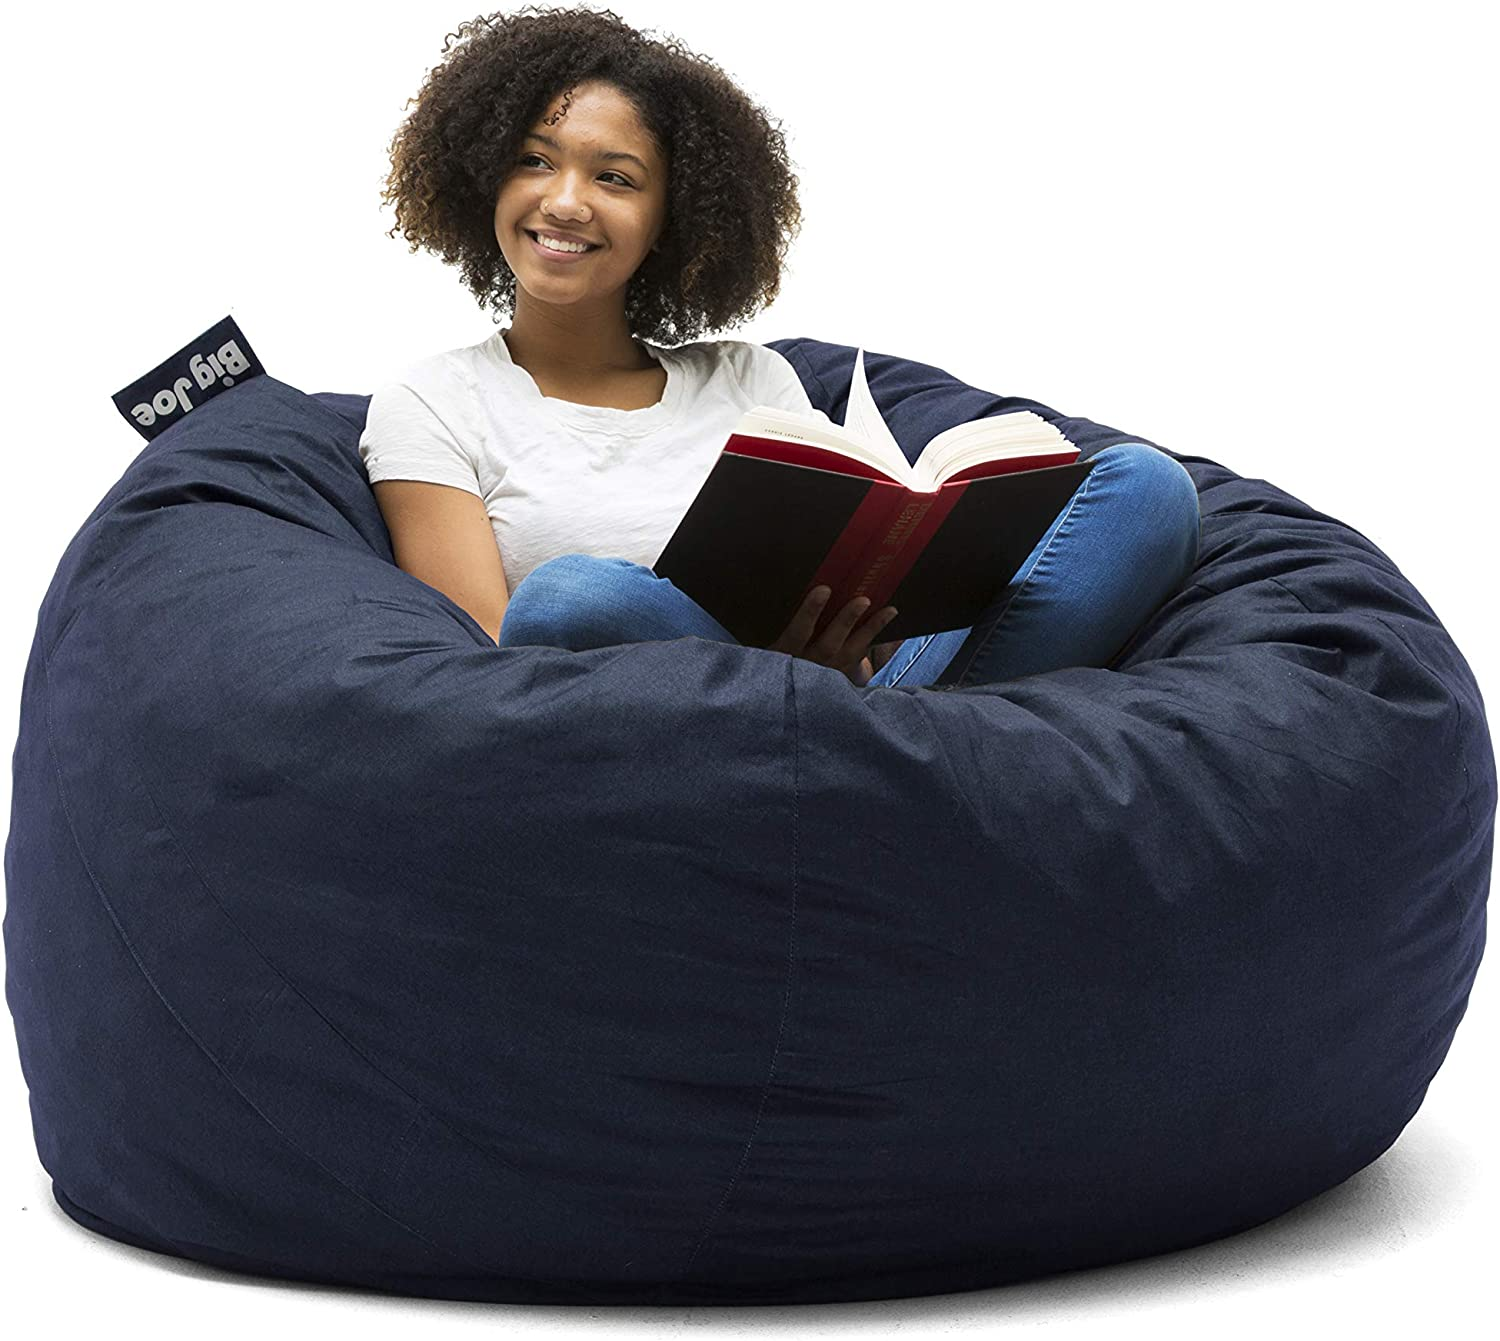 Top 7 Best Luxury Bean Bag Chairs for Adults [Top Picks 2021] 5